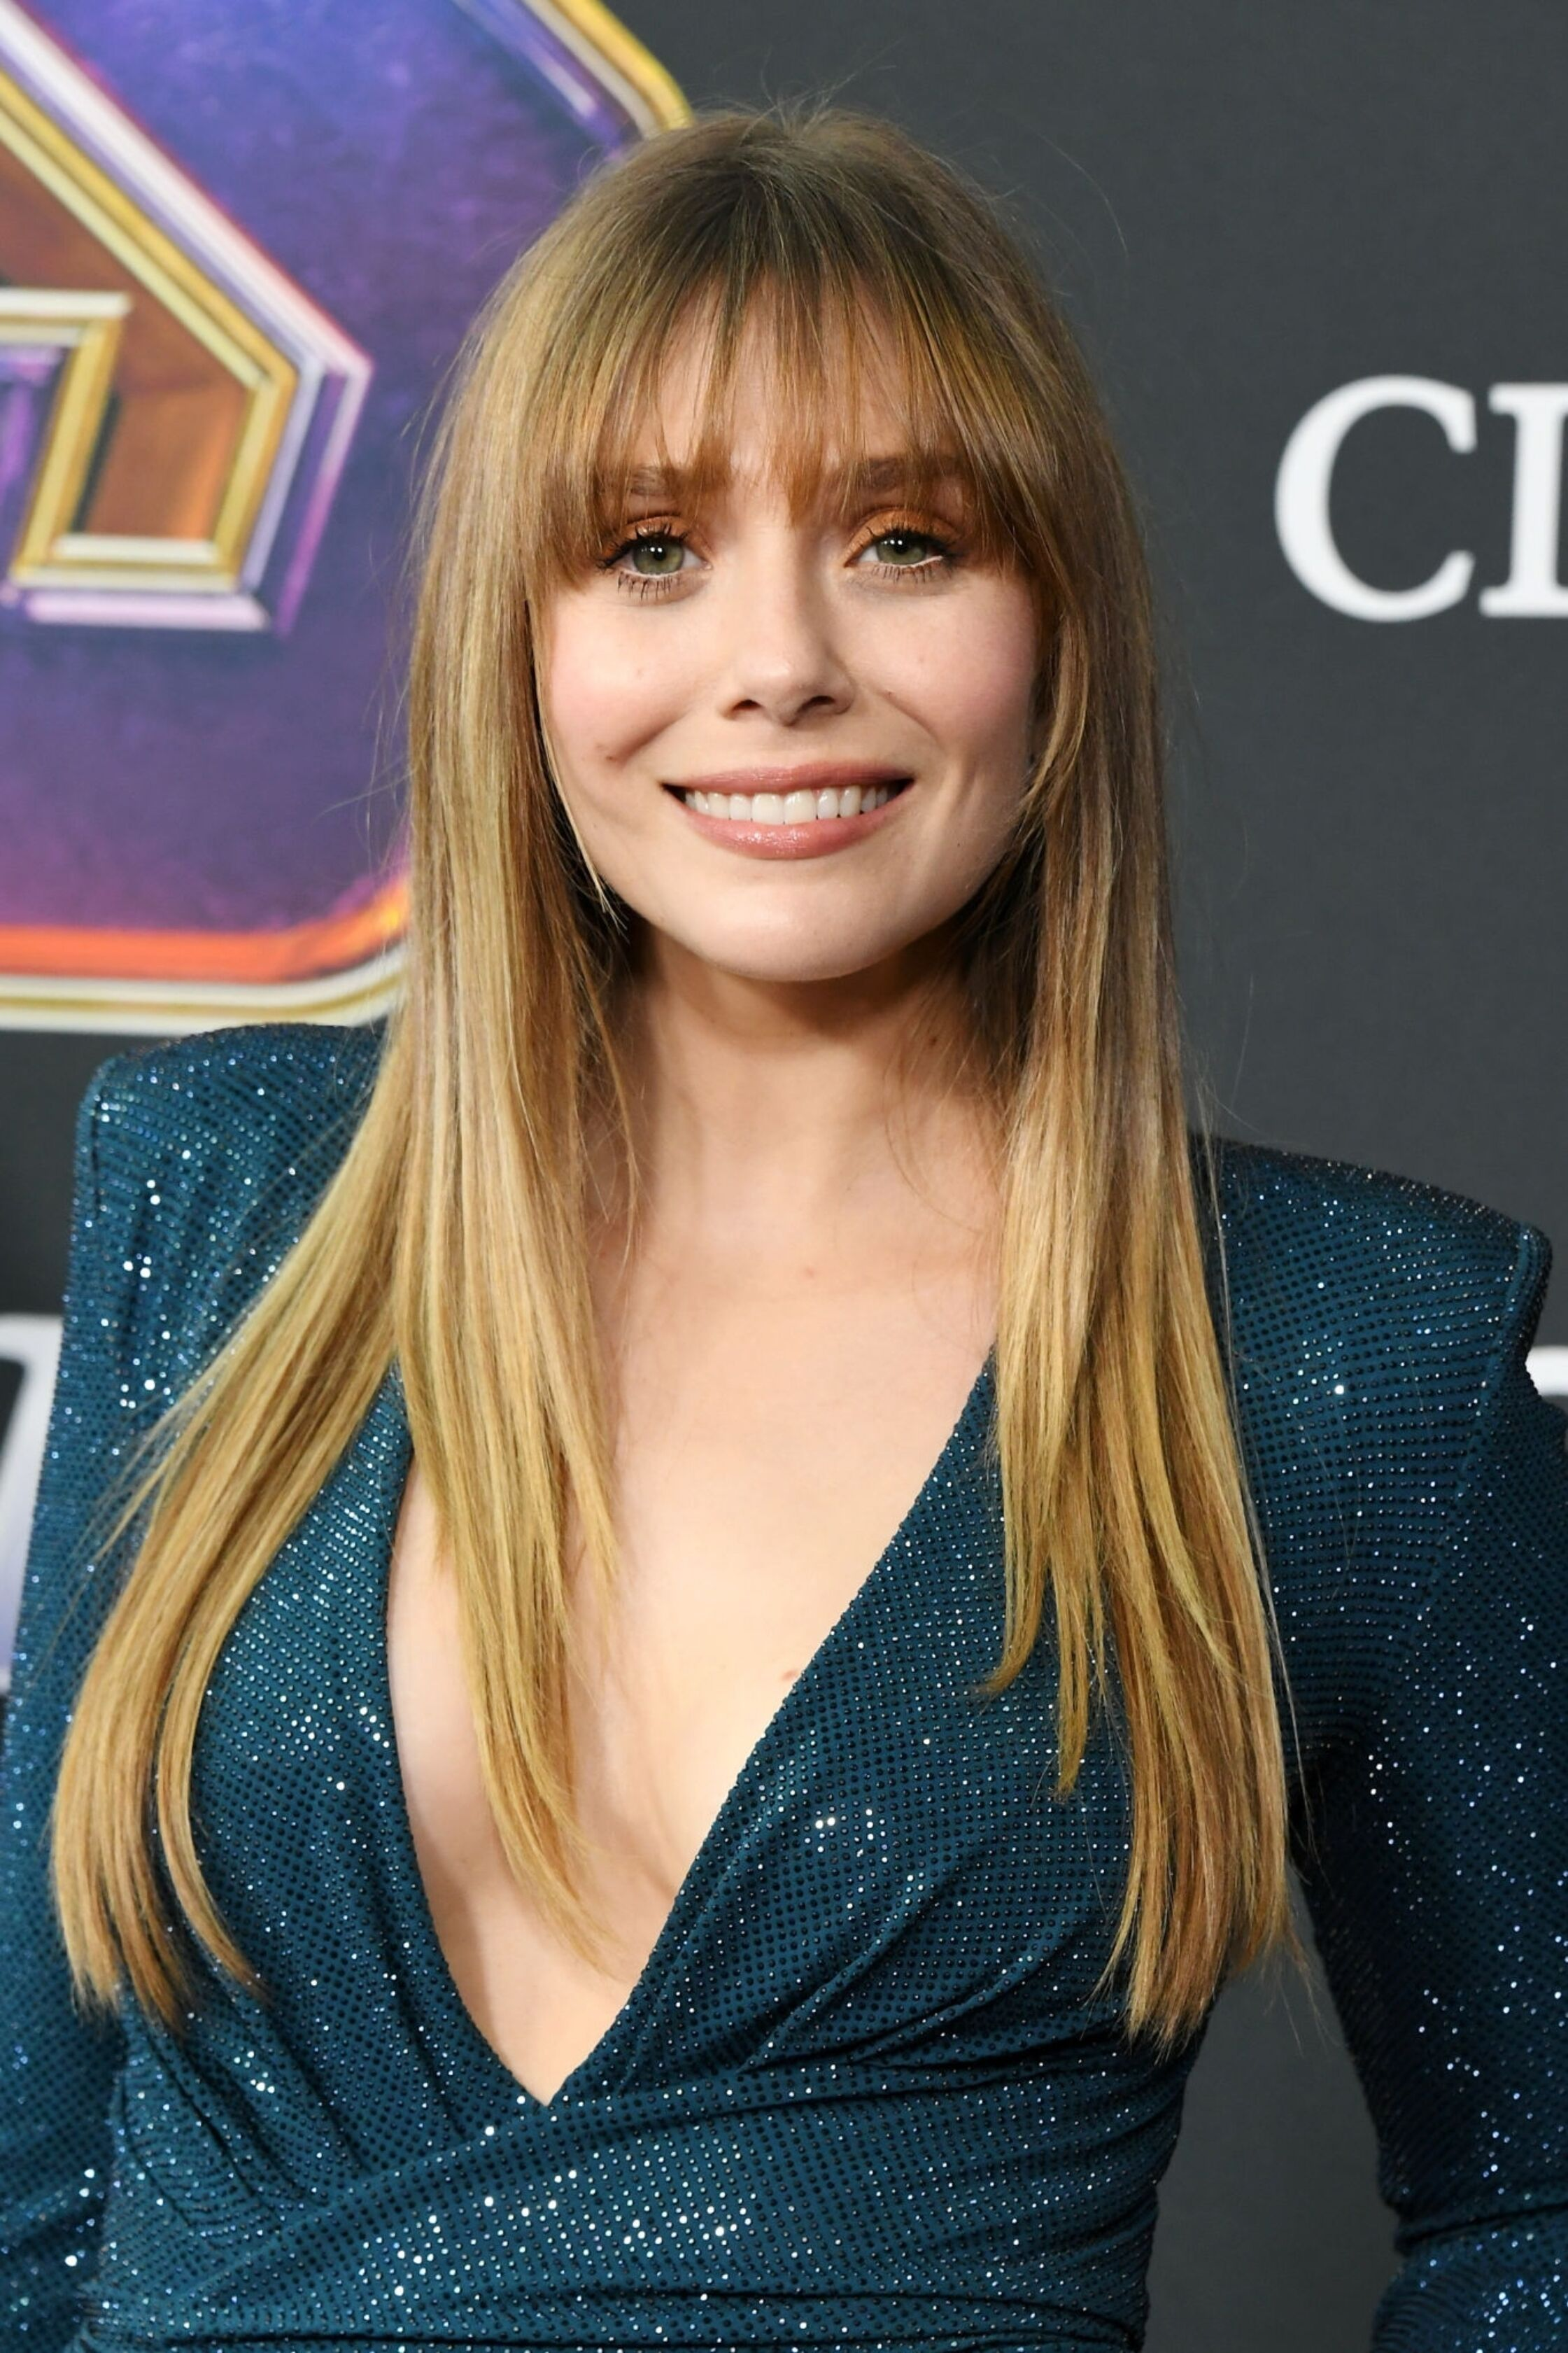 Avengersendgamewp 007 Jpgclick Image To Close This Window Wispy Bangs Hairstyles With Bangs How To Style Bangs